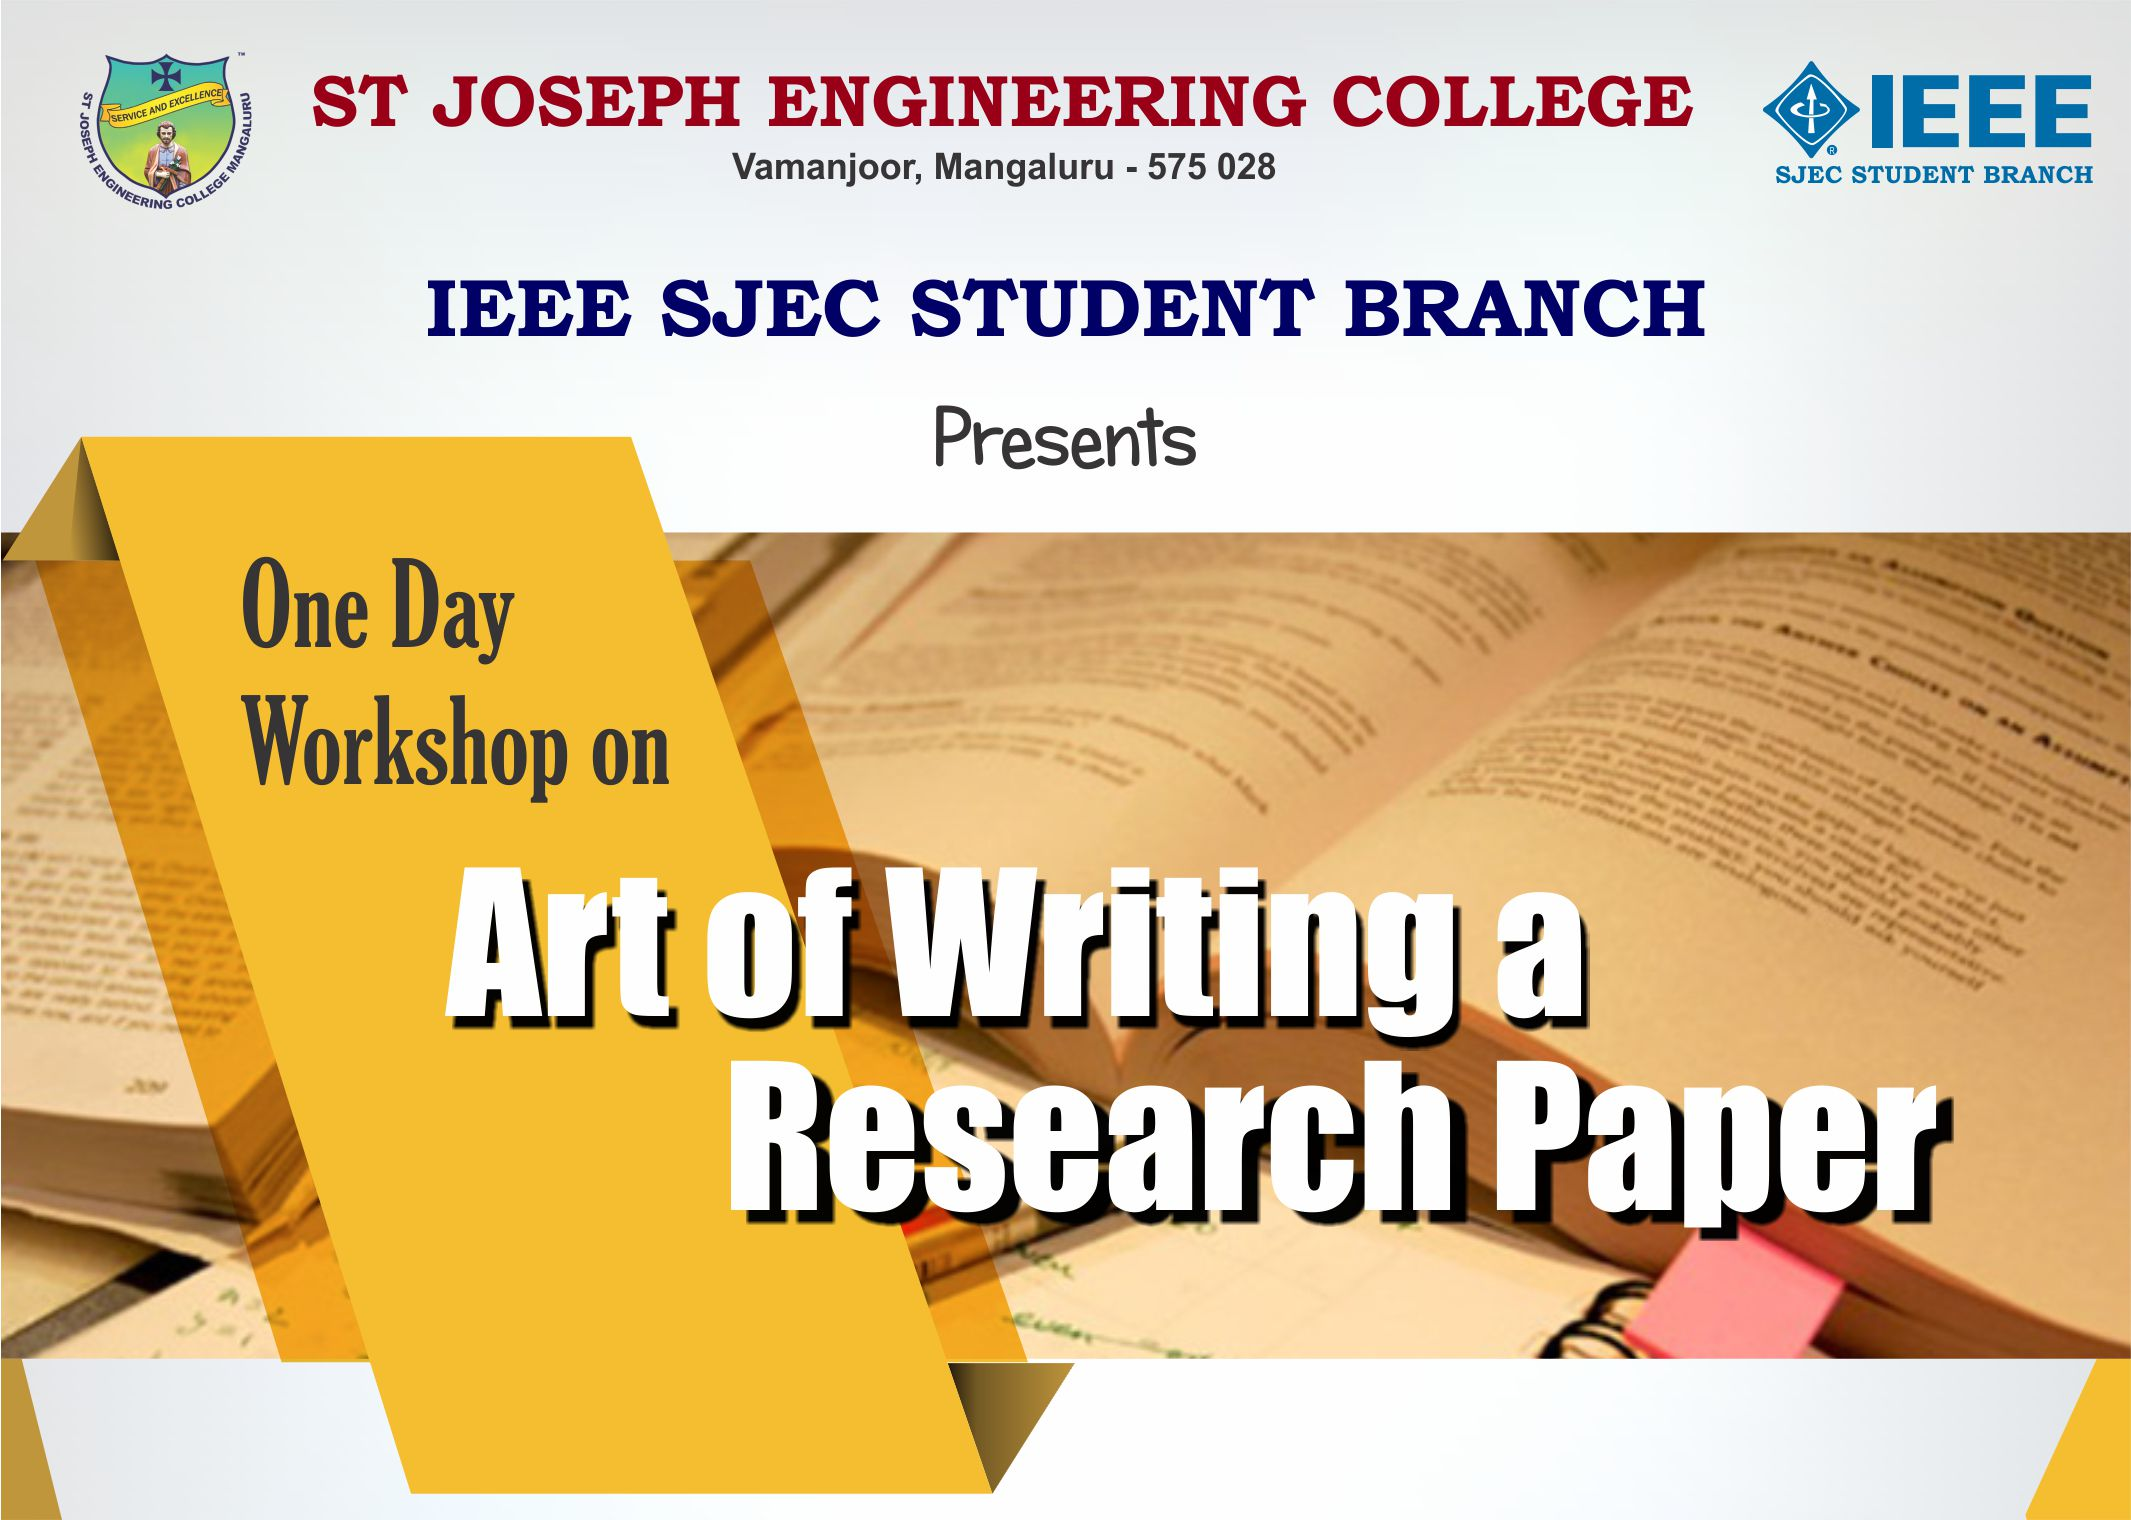 011 Research Paper Writing Workshop Unforgettable Rubric Software Free Download Prompts